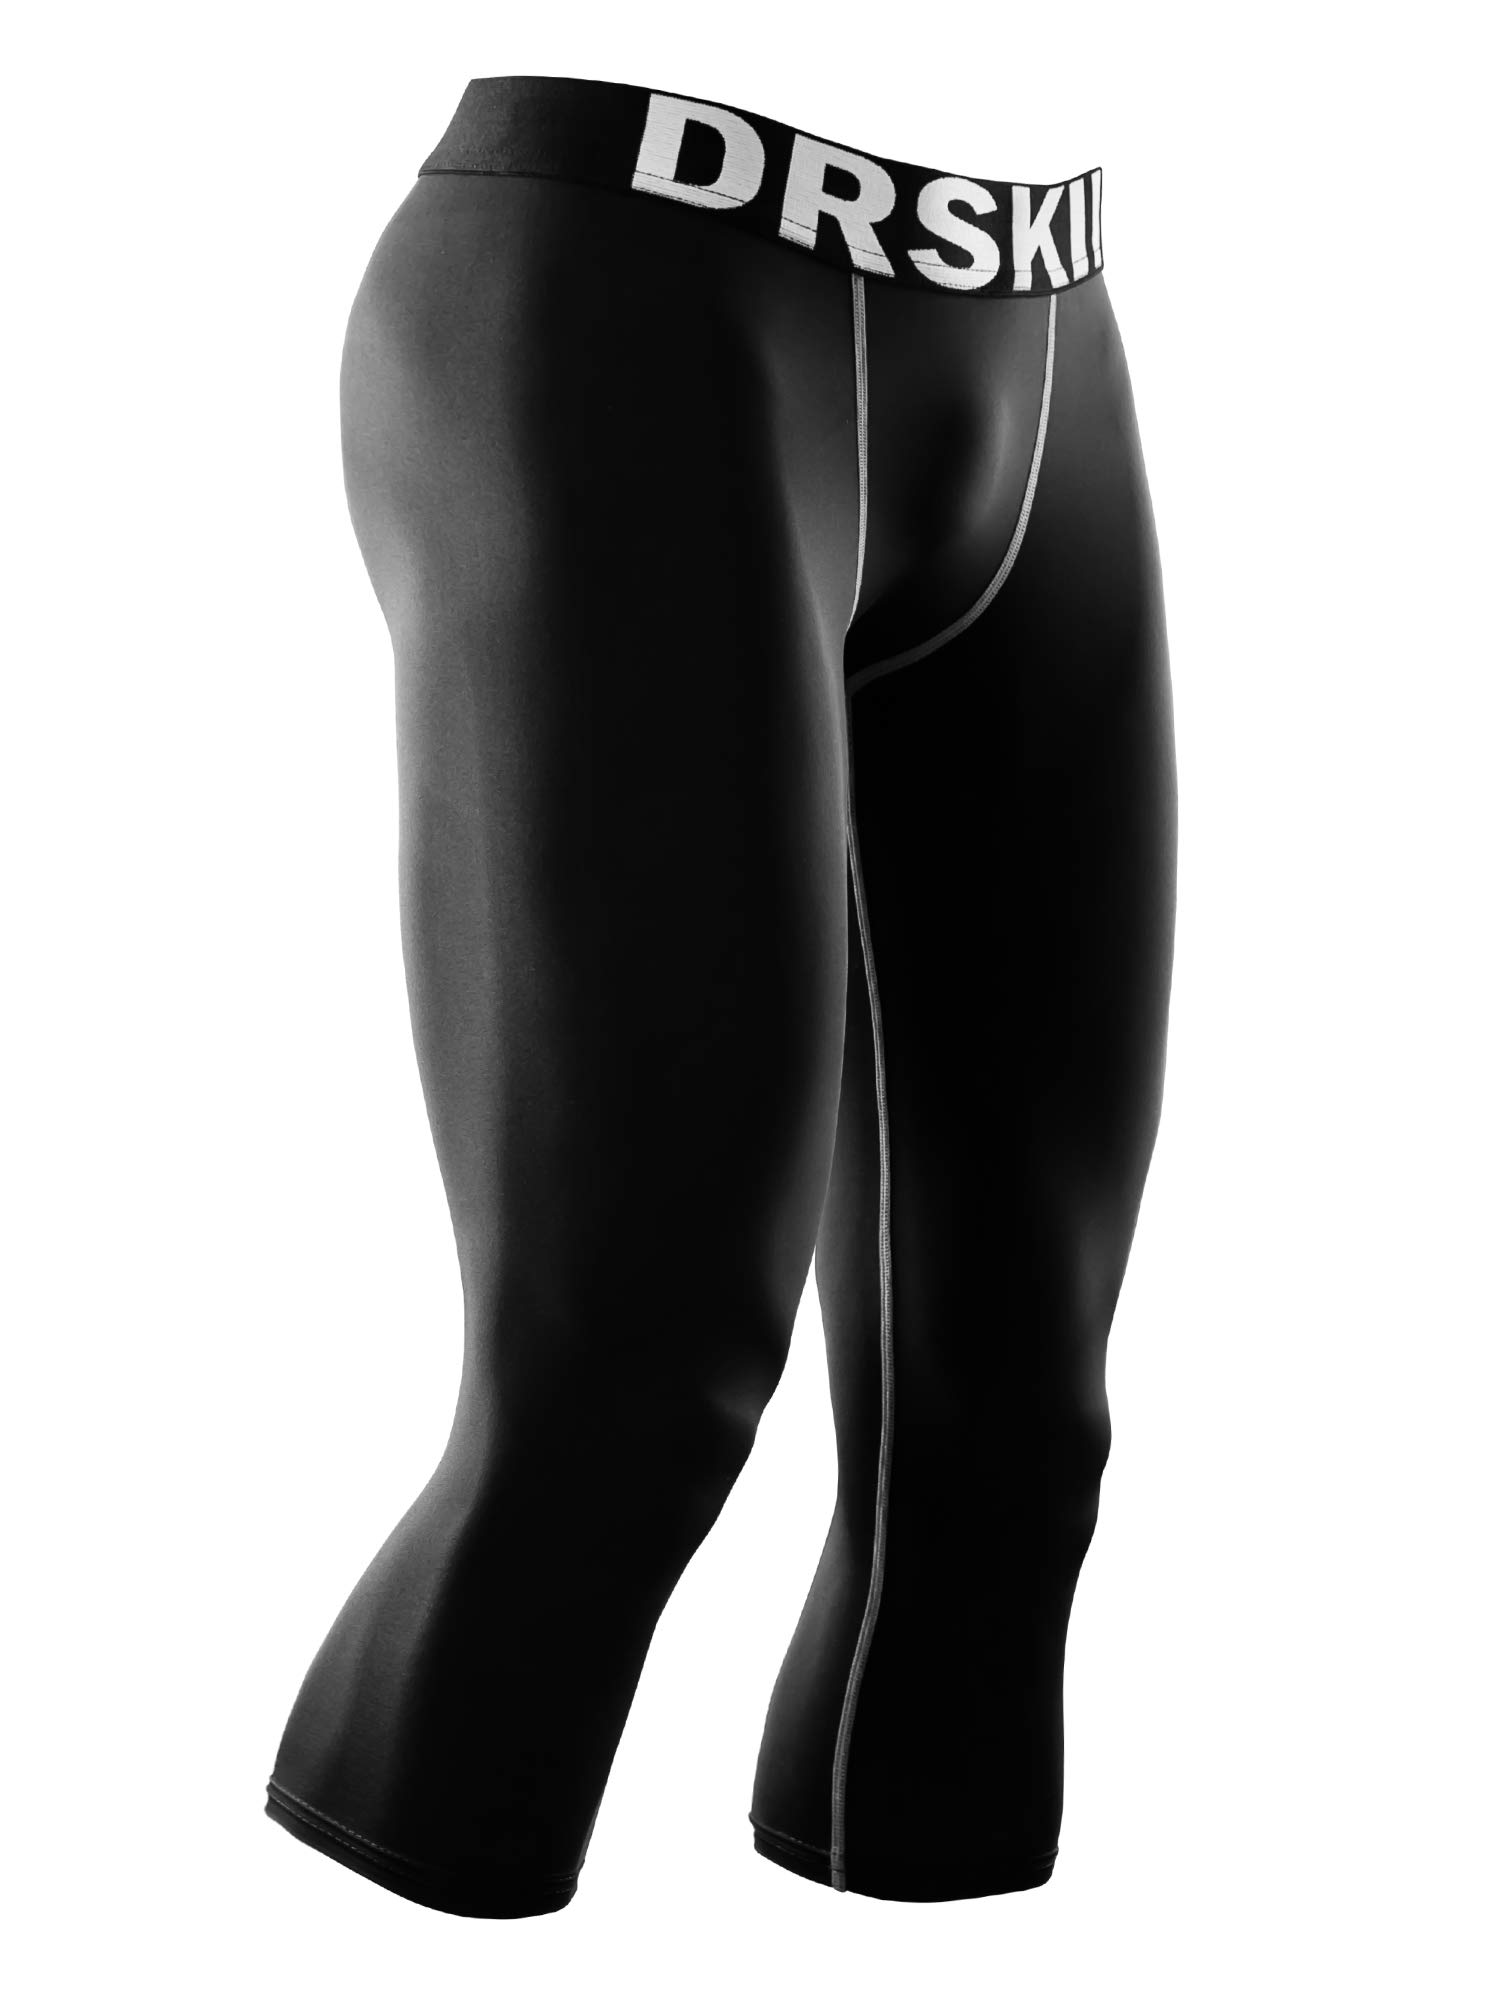 DRSKIN Men's 3/4 Compression Tight Pants Base Under Layer Running Shorts Warm Cool Dry (Line BG802, 2XL) by DRSKIN